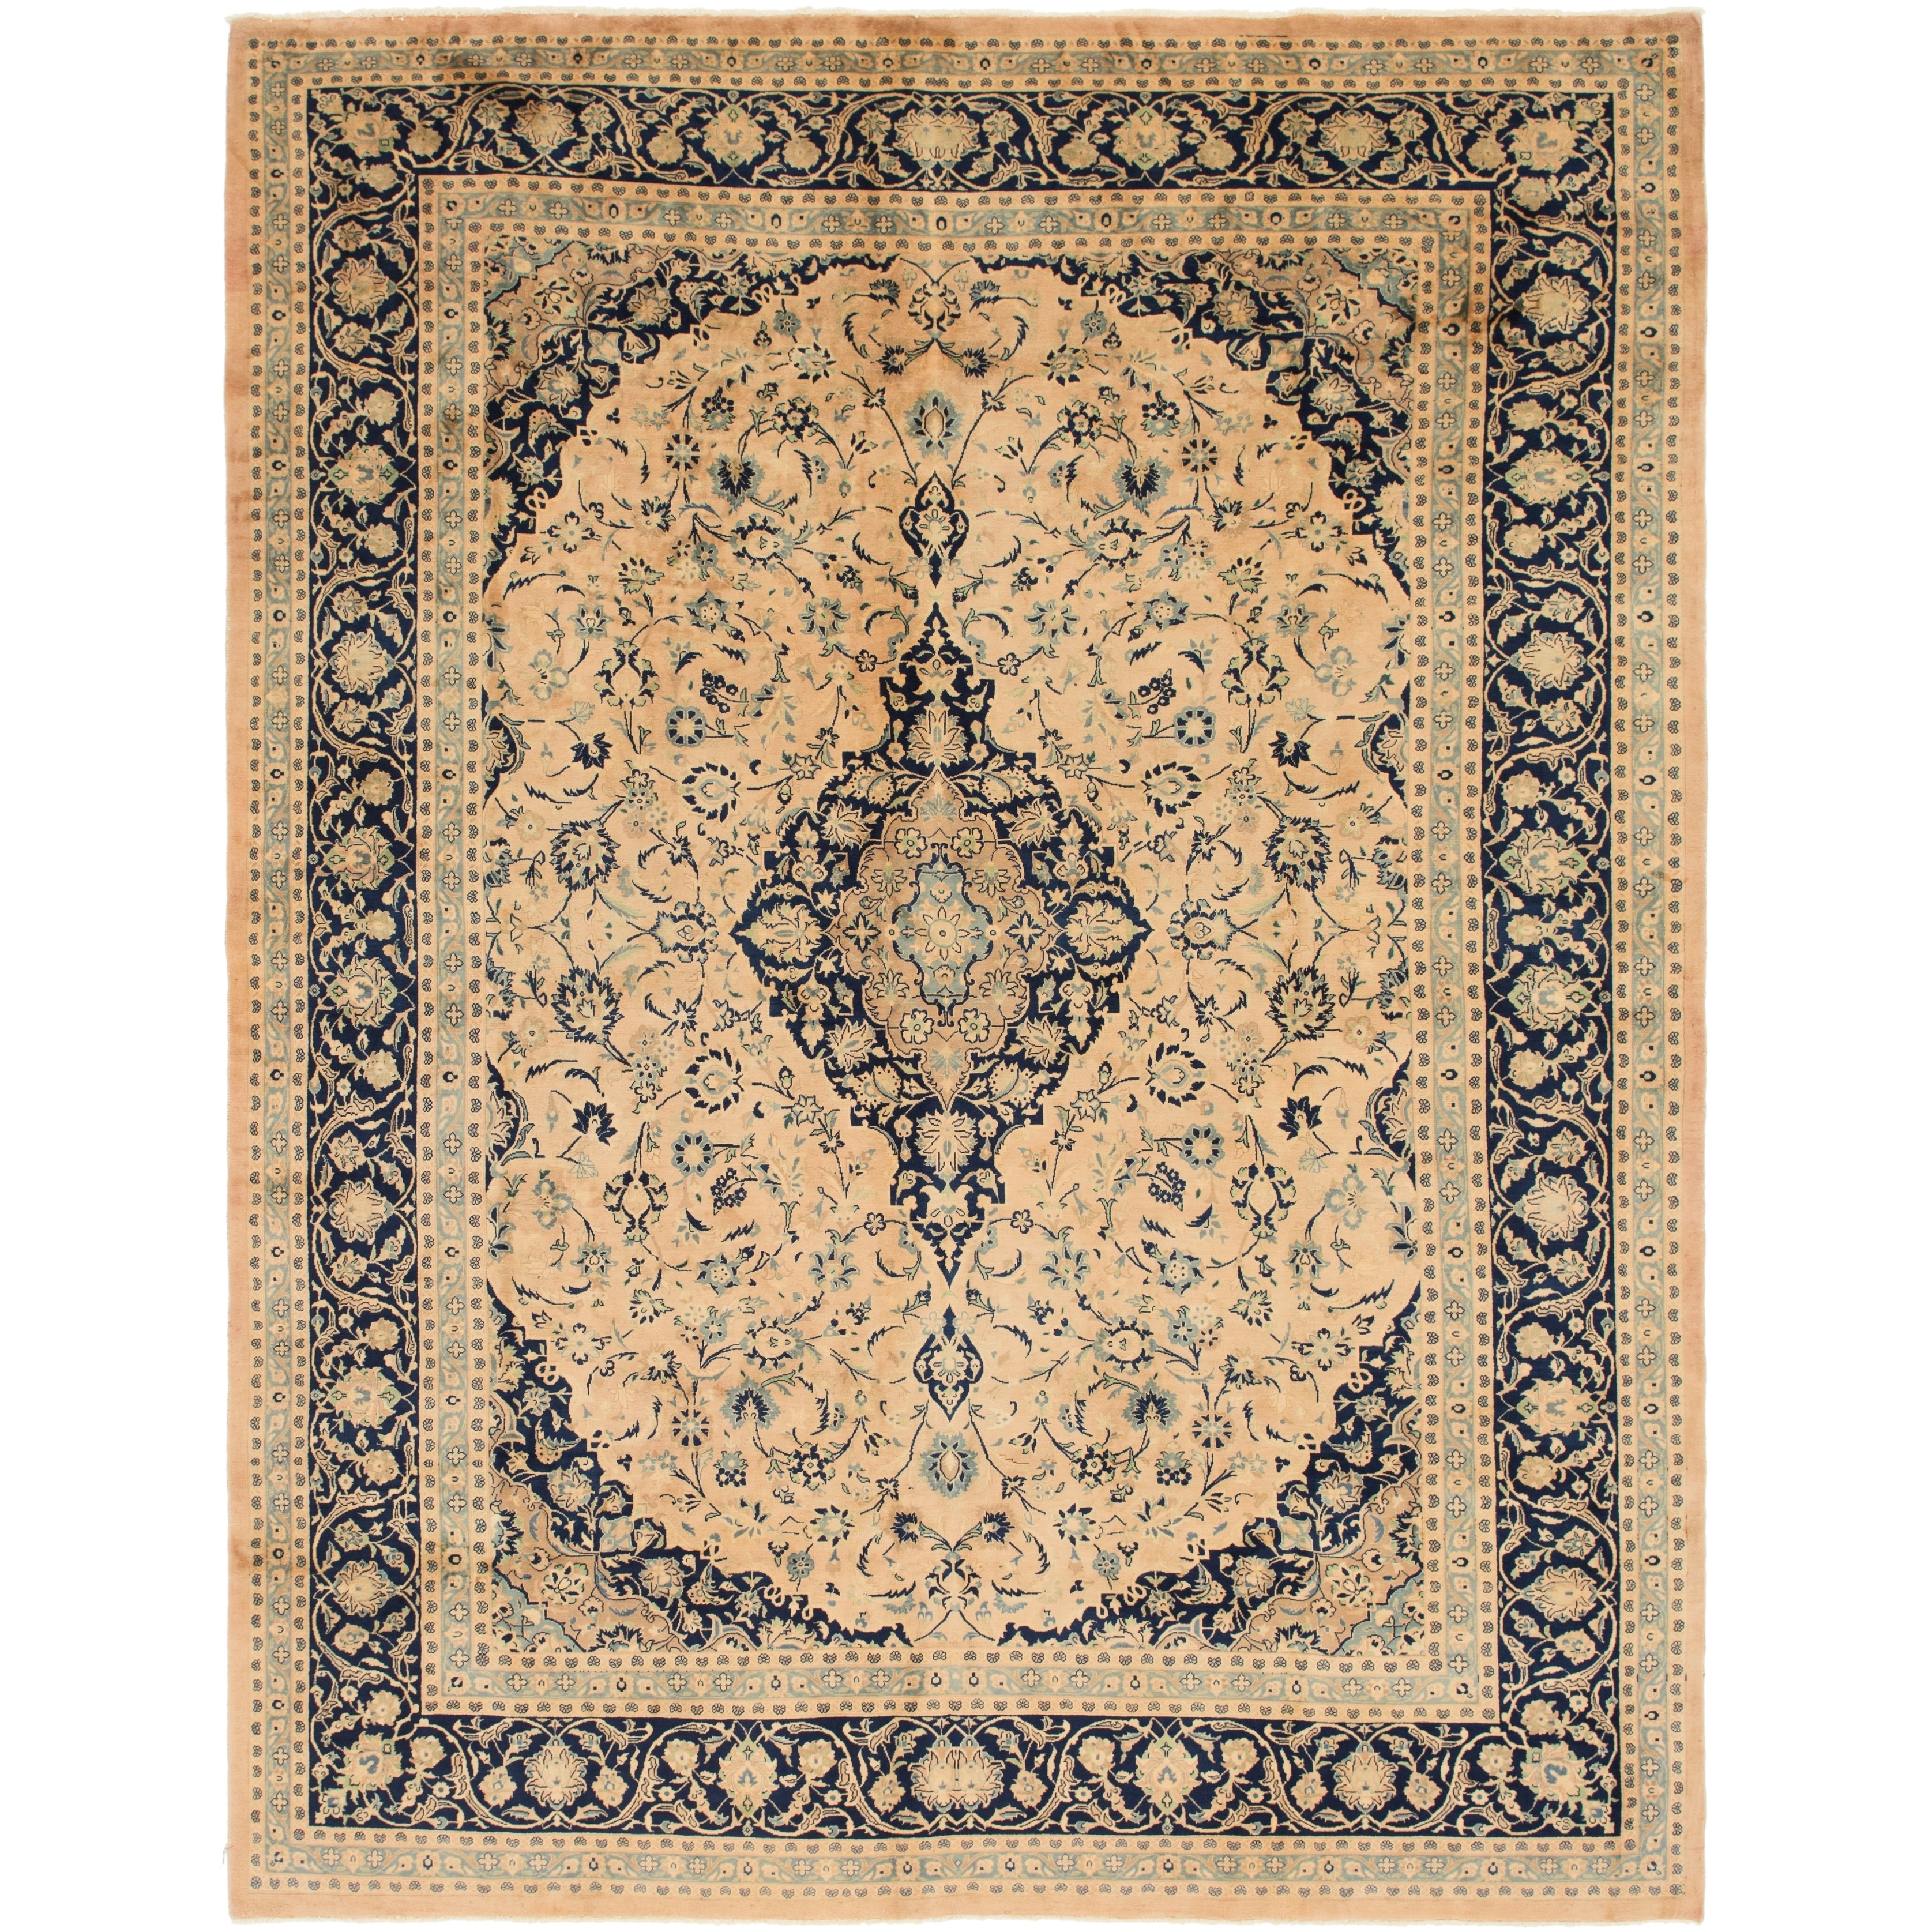 Hand Knotted Kashan Semi Antique Wool Area Rug - 9 8 x 12 7 (Orange - 9 8 x 12 7)